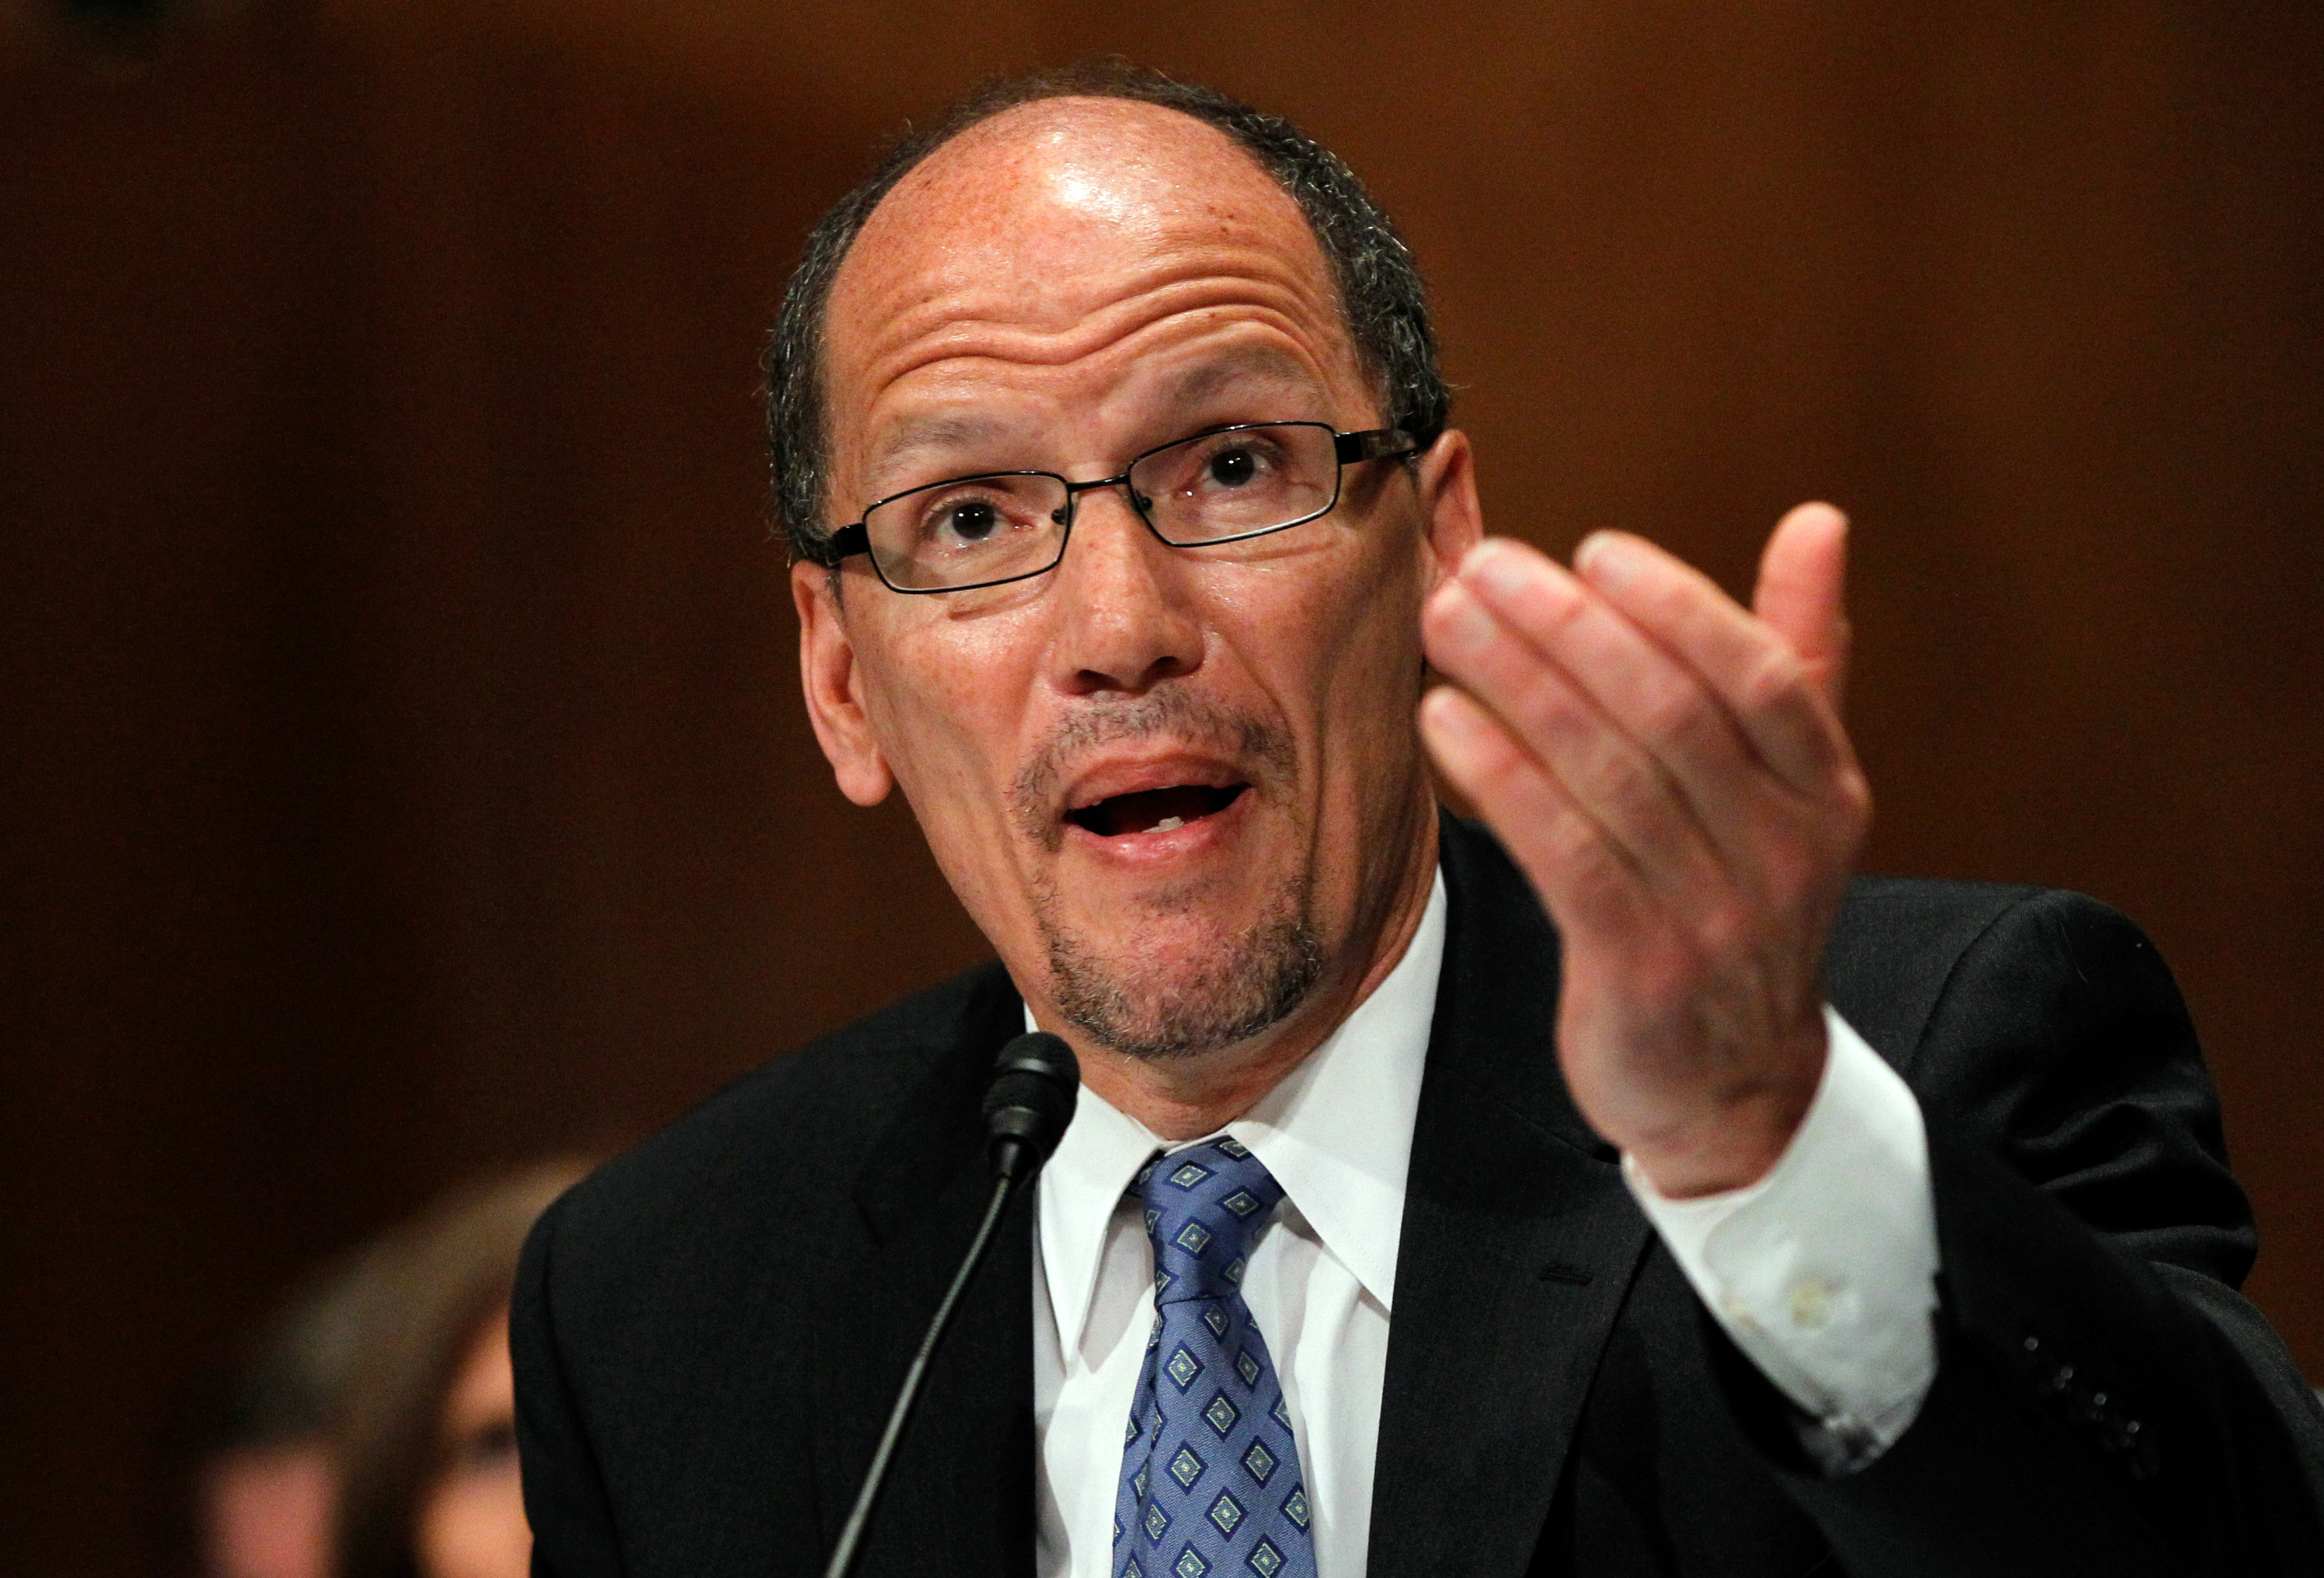 Labor Secretary nominee Thomas Perez said job creation and training would be his top priority.